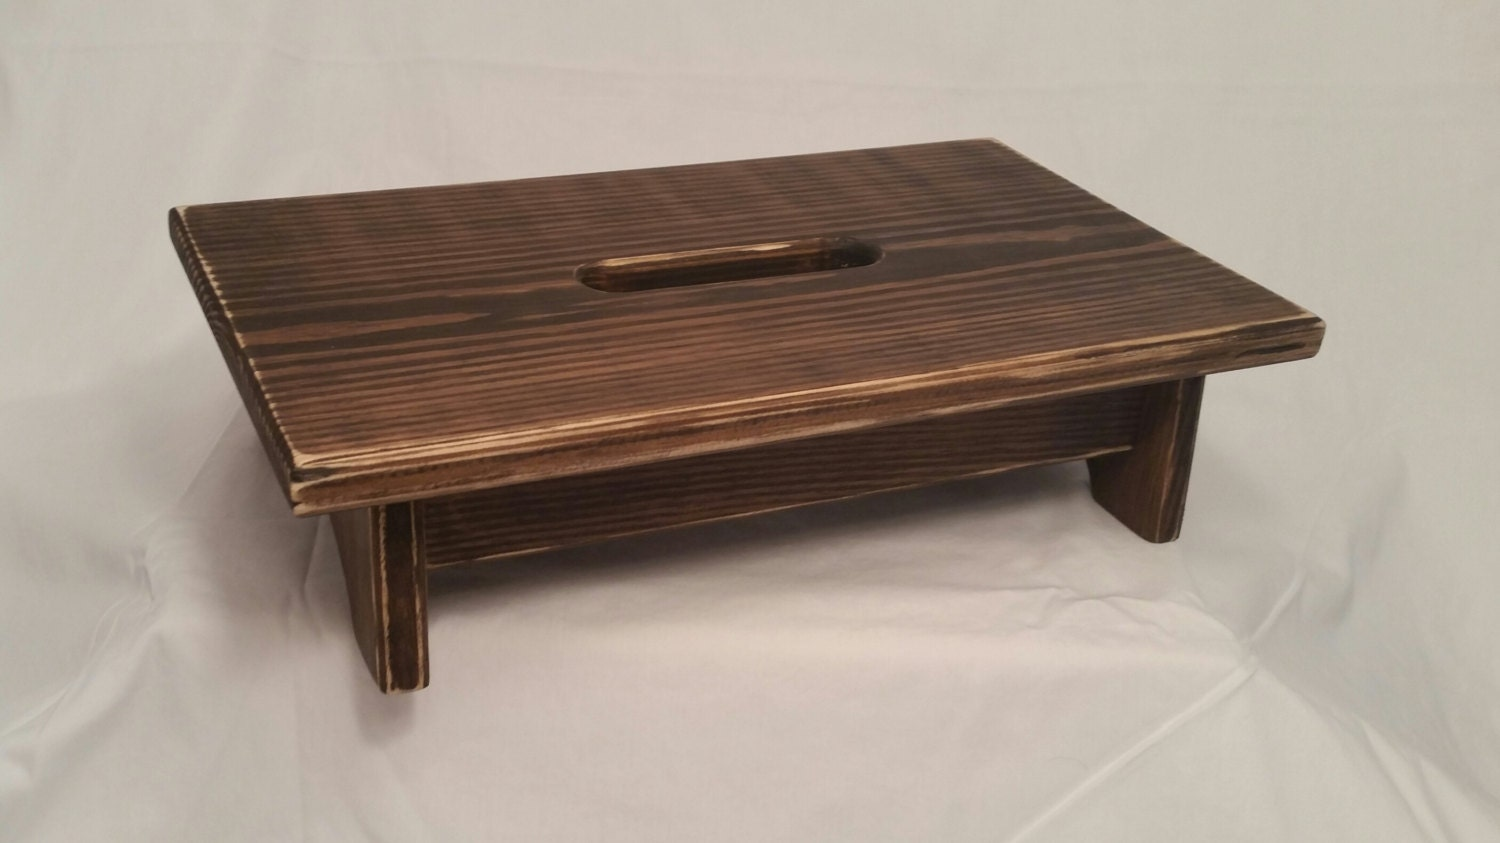 #644838 Small Pine Wood Step Stool With Handle Hole By OutOnaLimbWoodGifts with 1500x843 px of Best Small Wooden Stools 8431500 image @ avoidforclosure.info